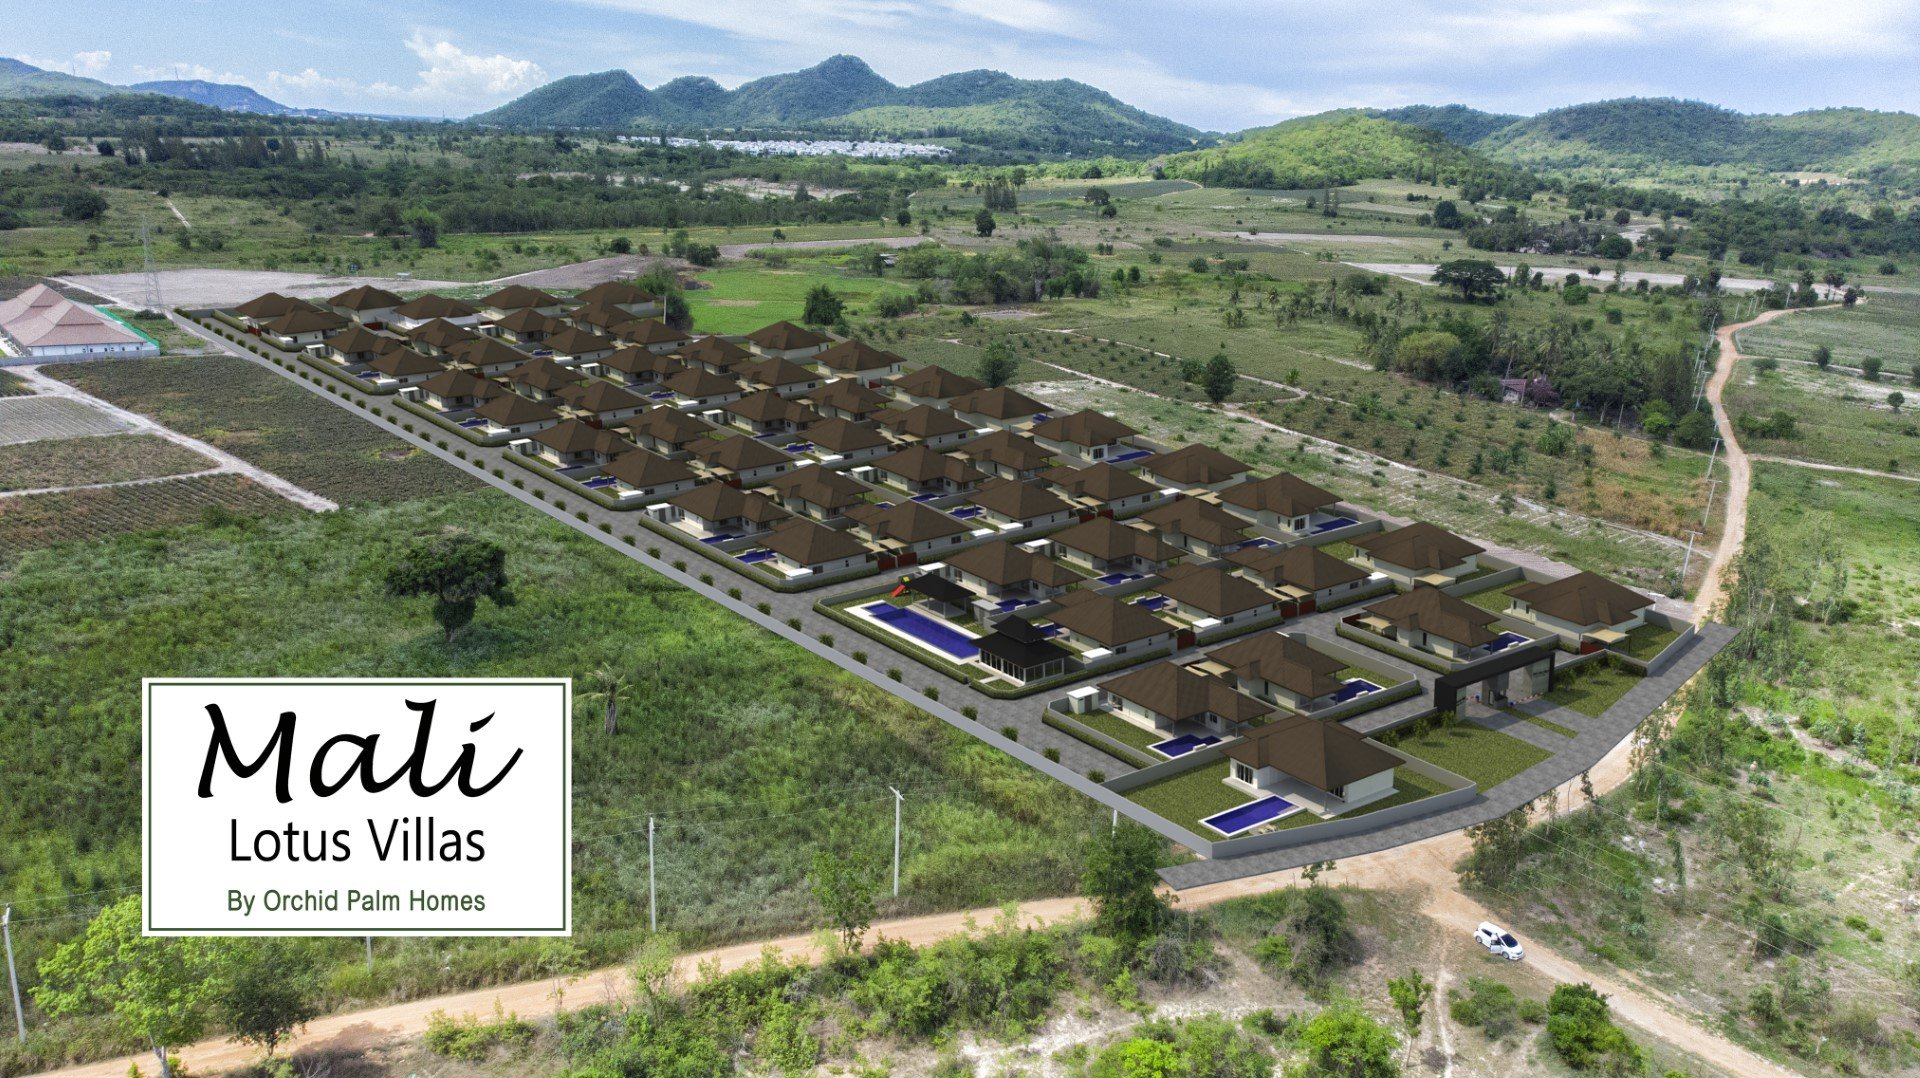 Mali Lotus Villas by Orchid Palm Homes | 3D Conceptual Image with Real Background